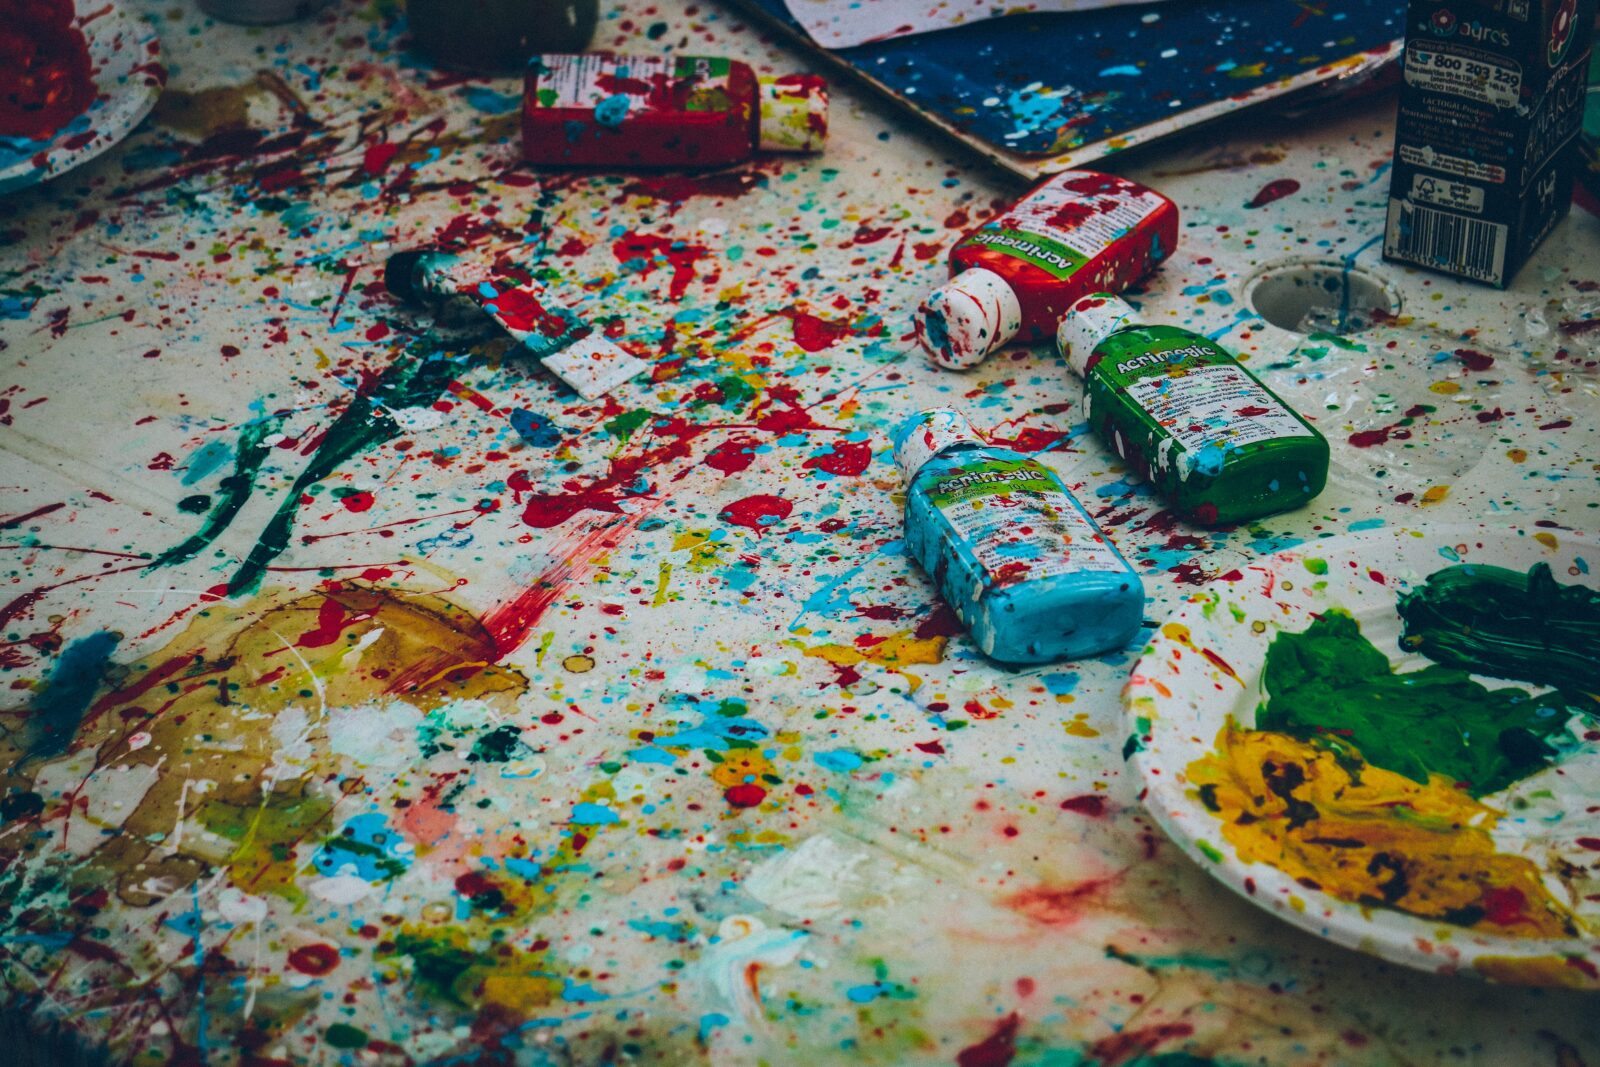 Paint splatters and bottles on a floor